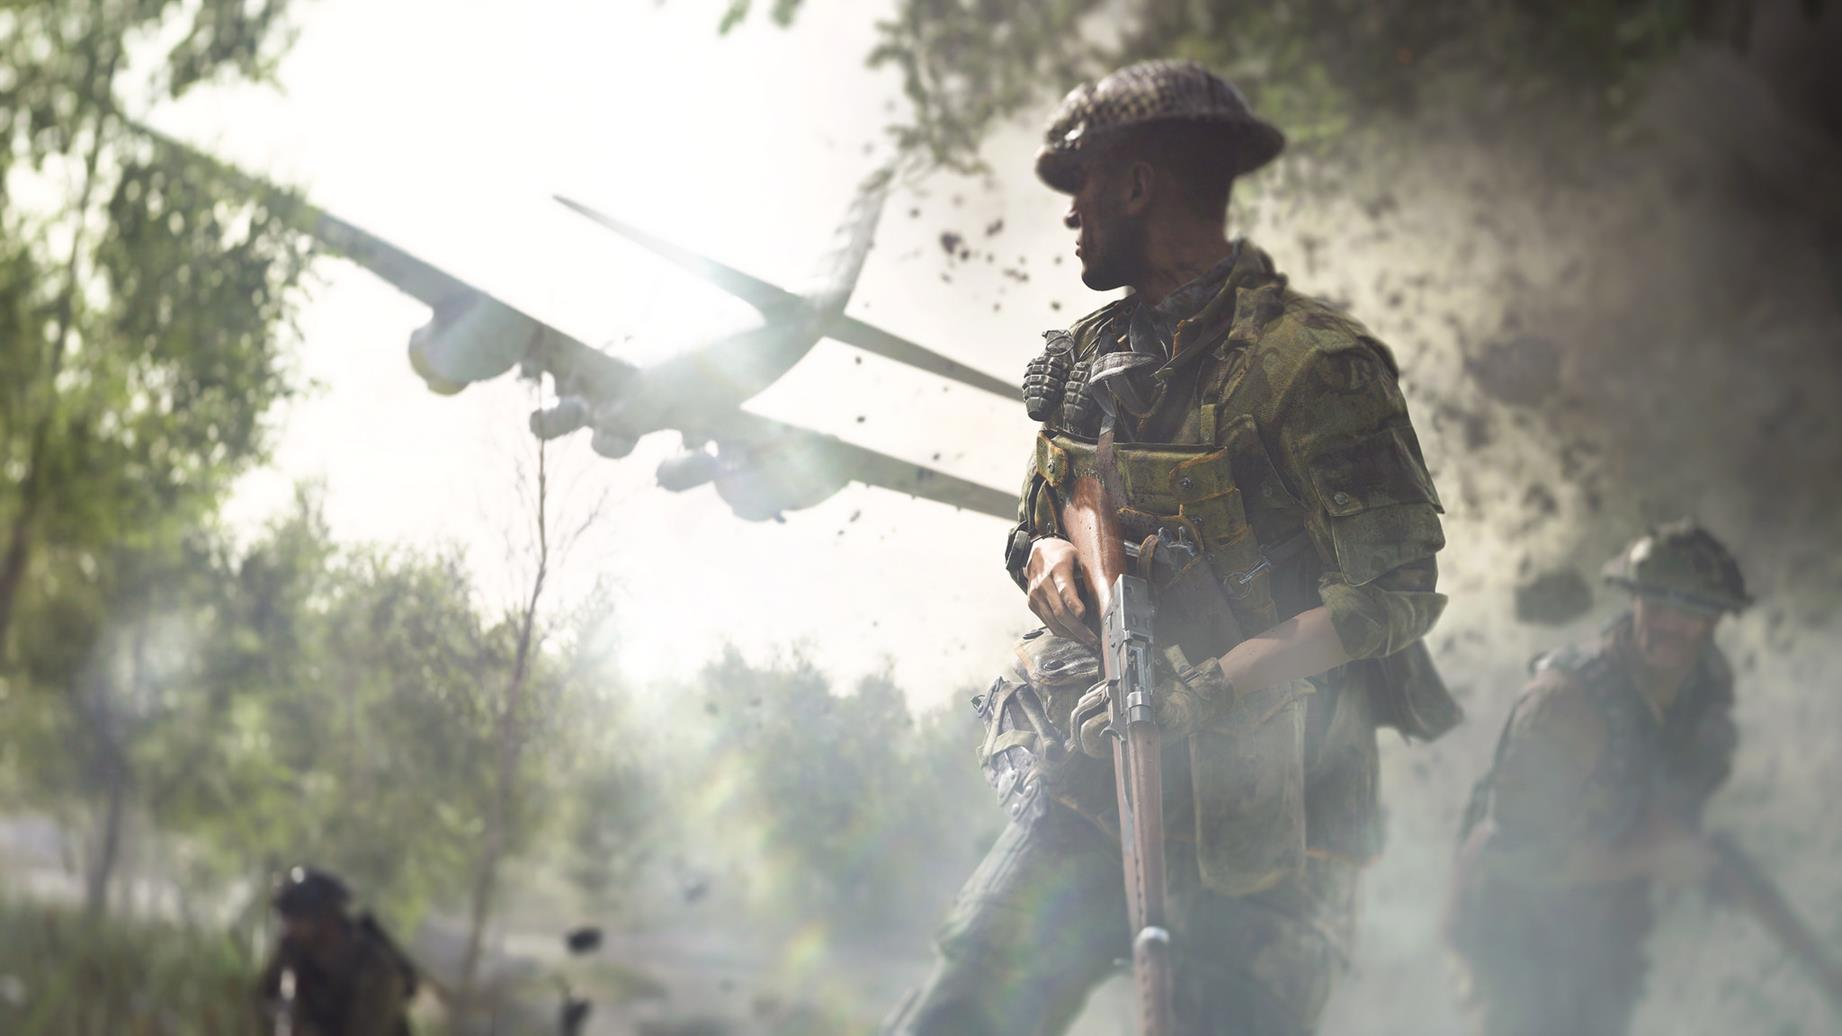 Battlefield 5 guide: modes, weapons, multiplayer and more - VG247